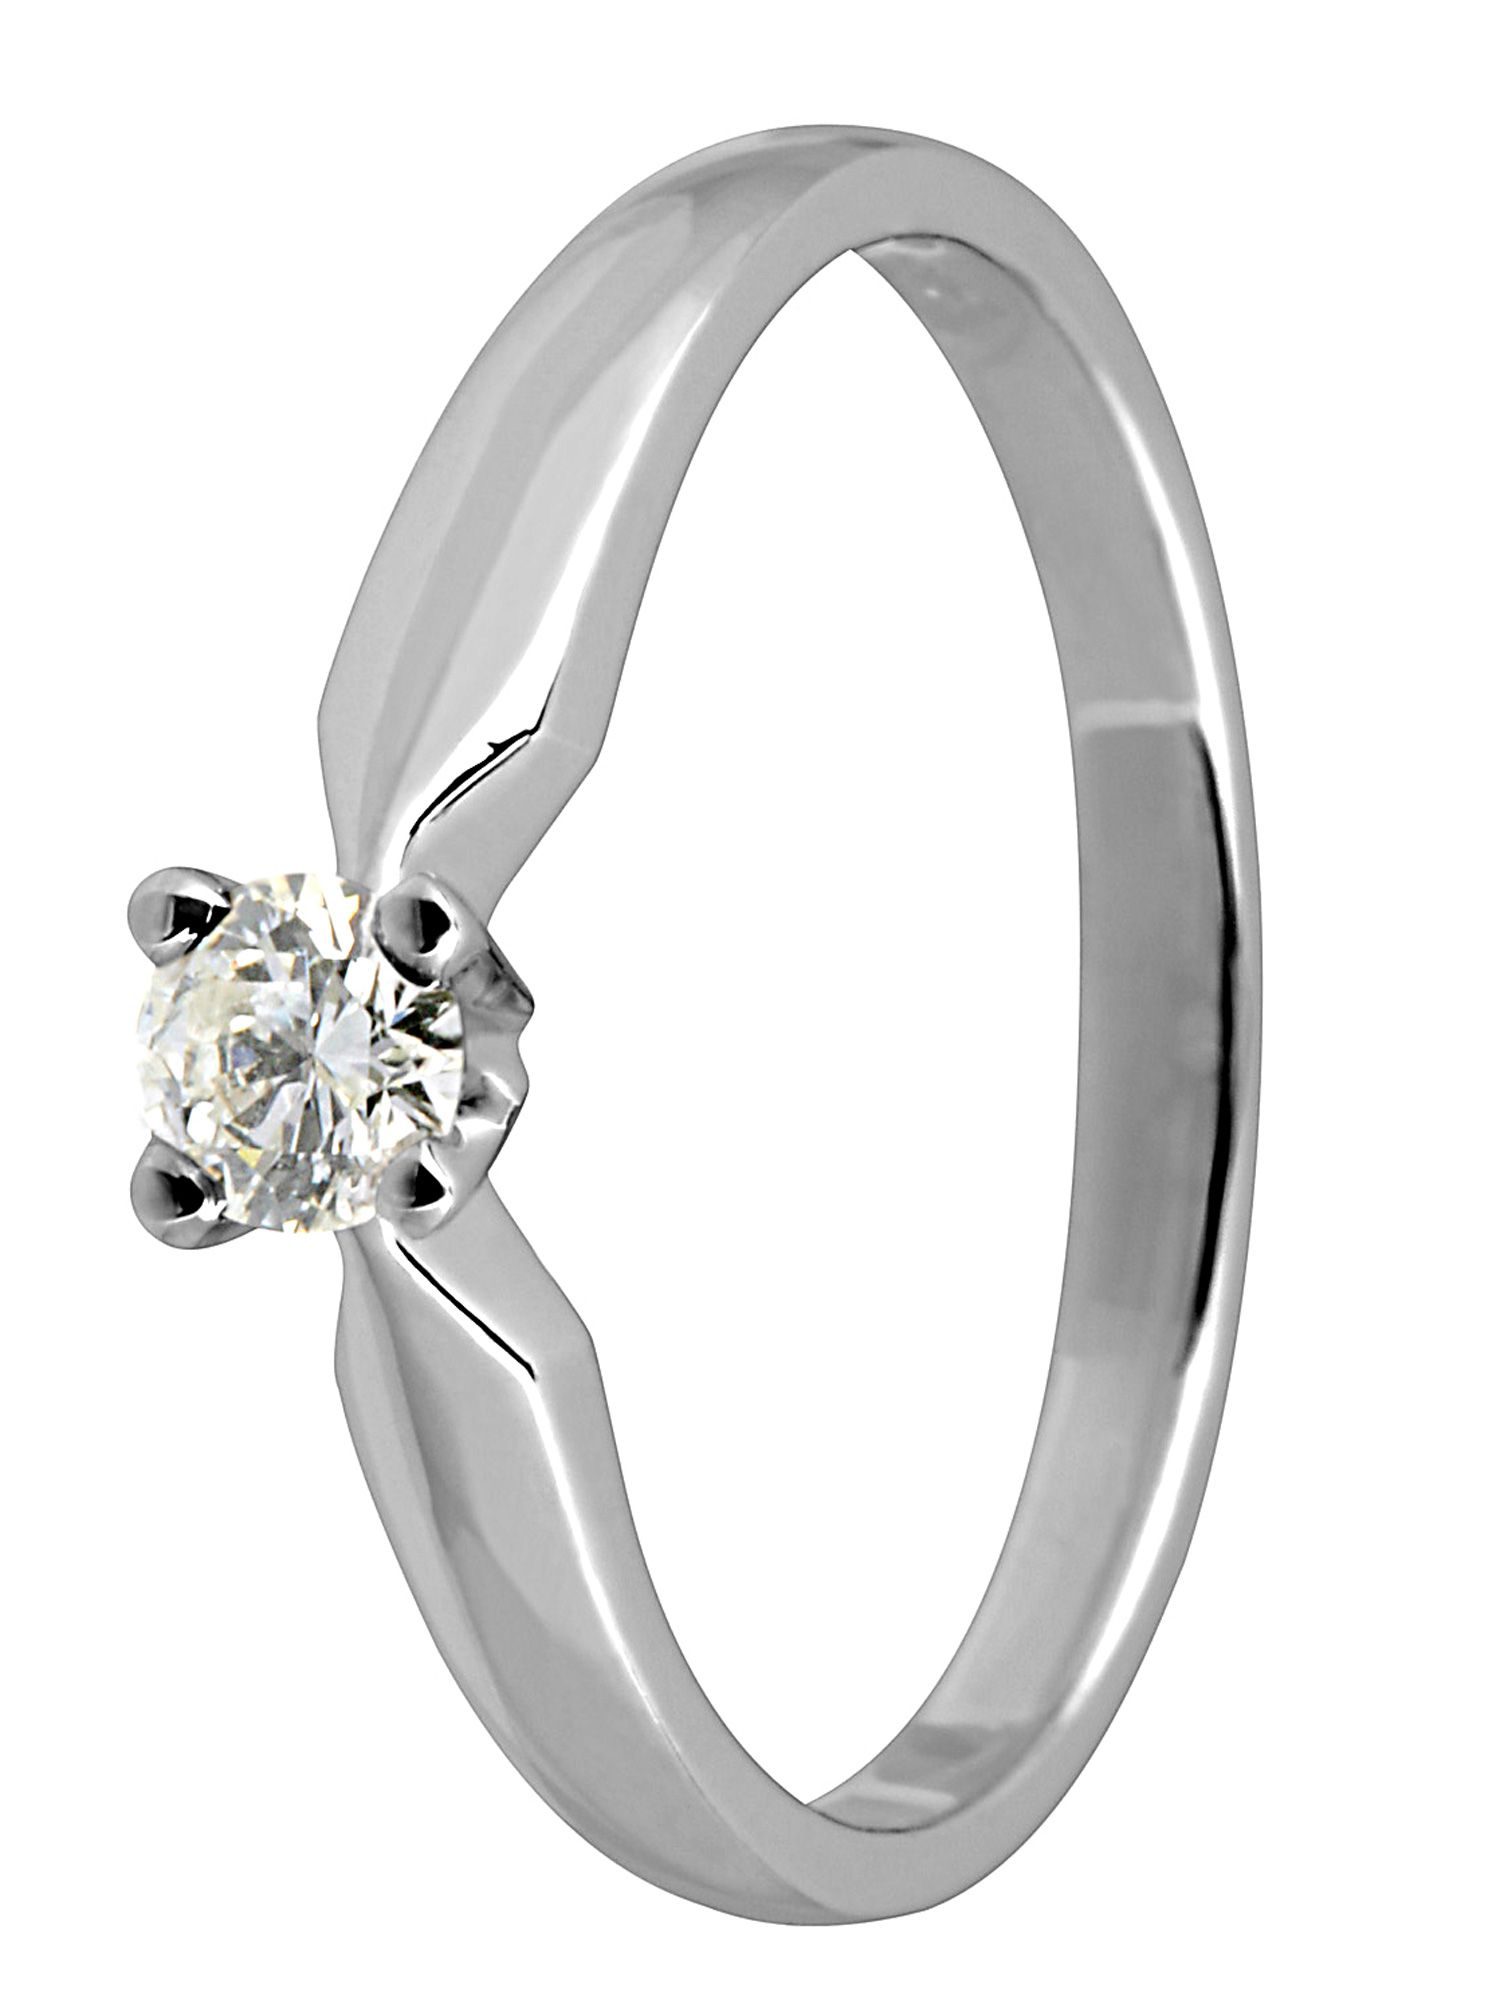 Goldsmiths 18ct white gold single stone diamond ring